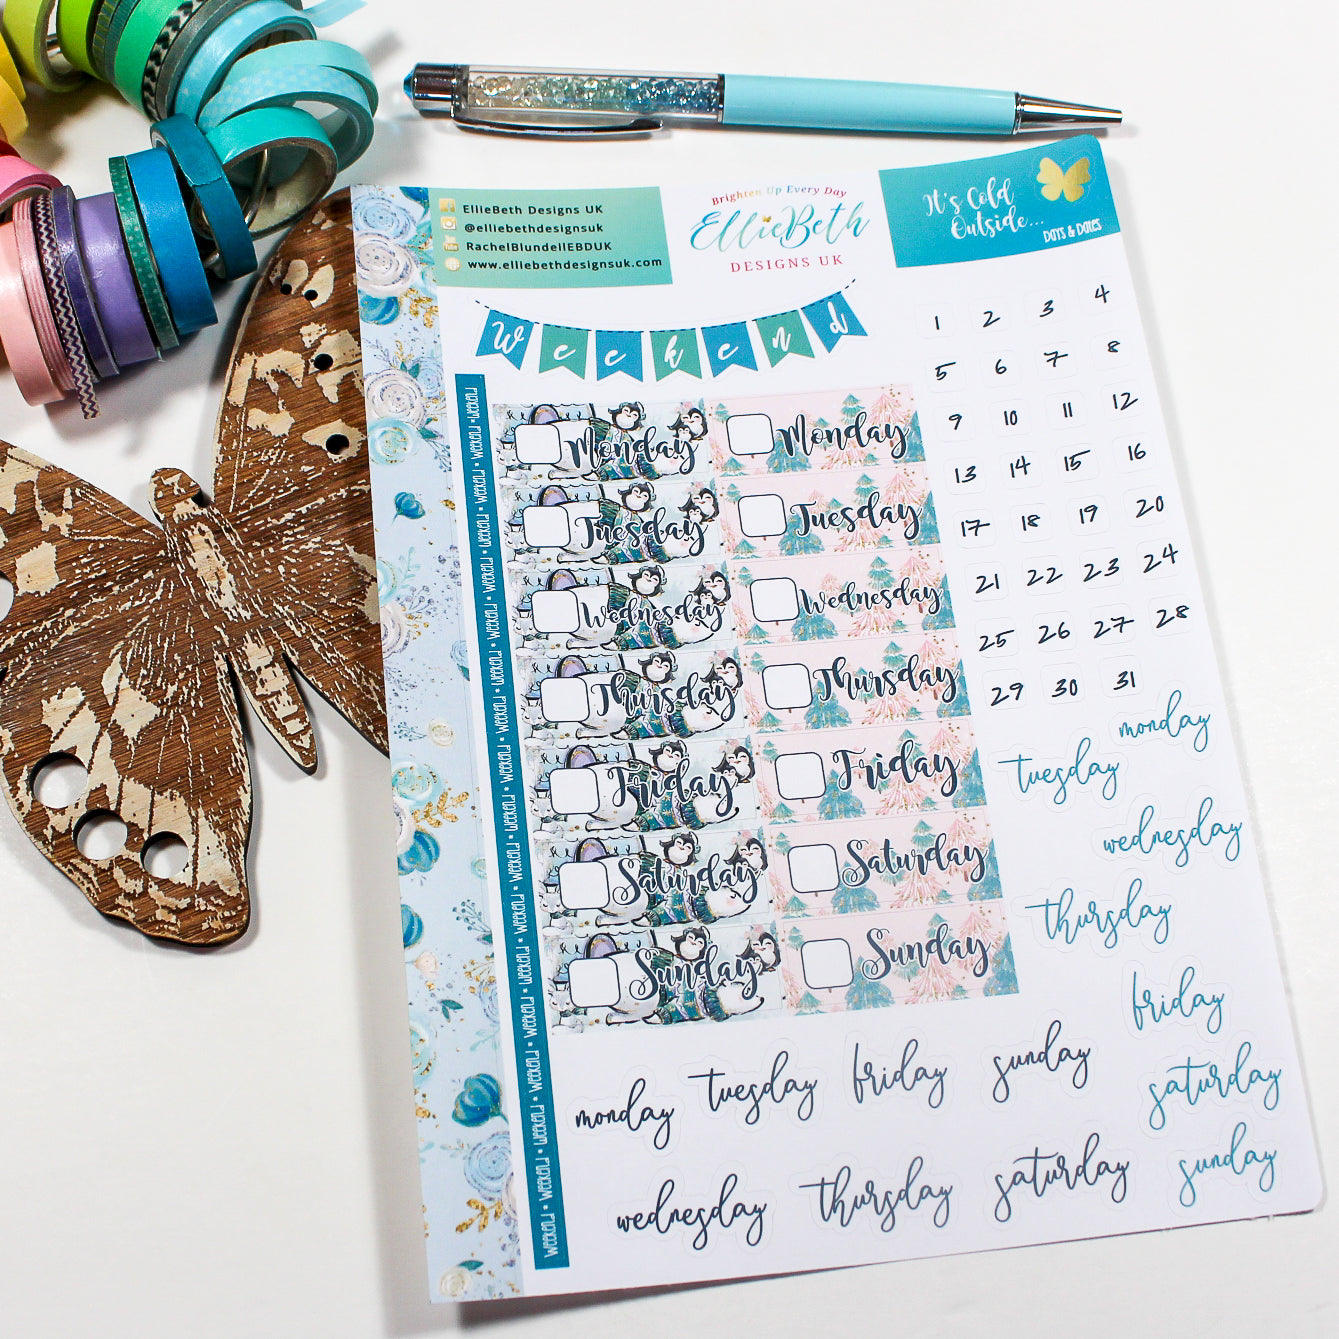 'It's Cold Outside' - Days and Dates - A5 binder ready planner stickers